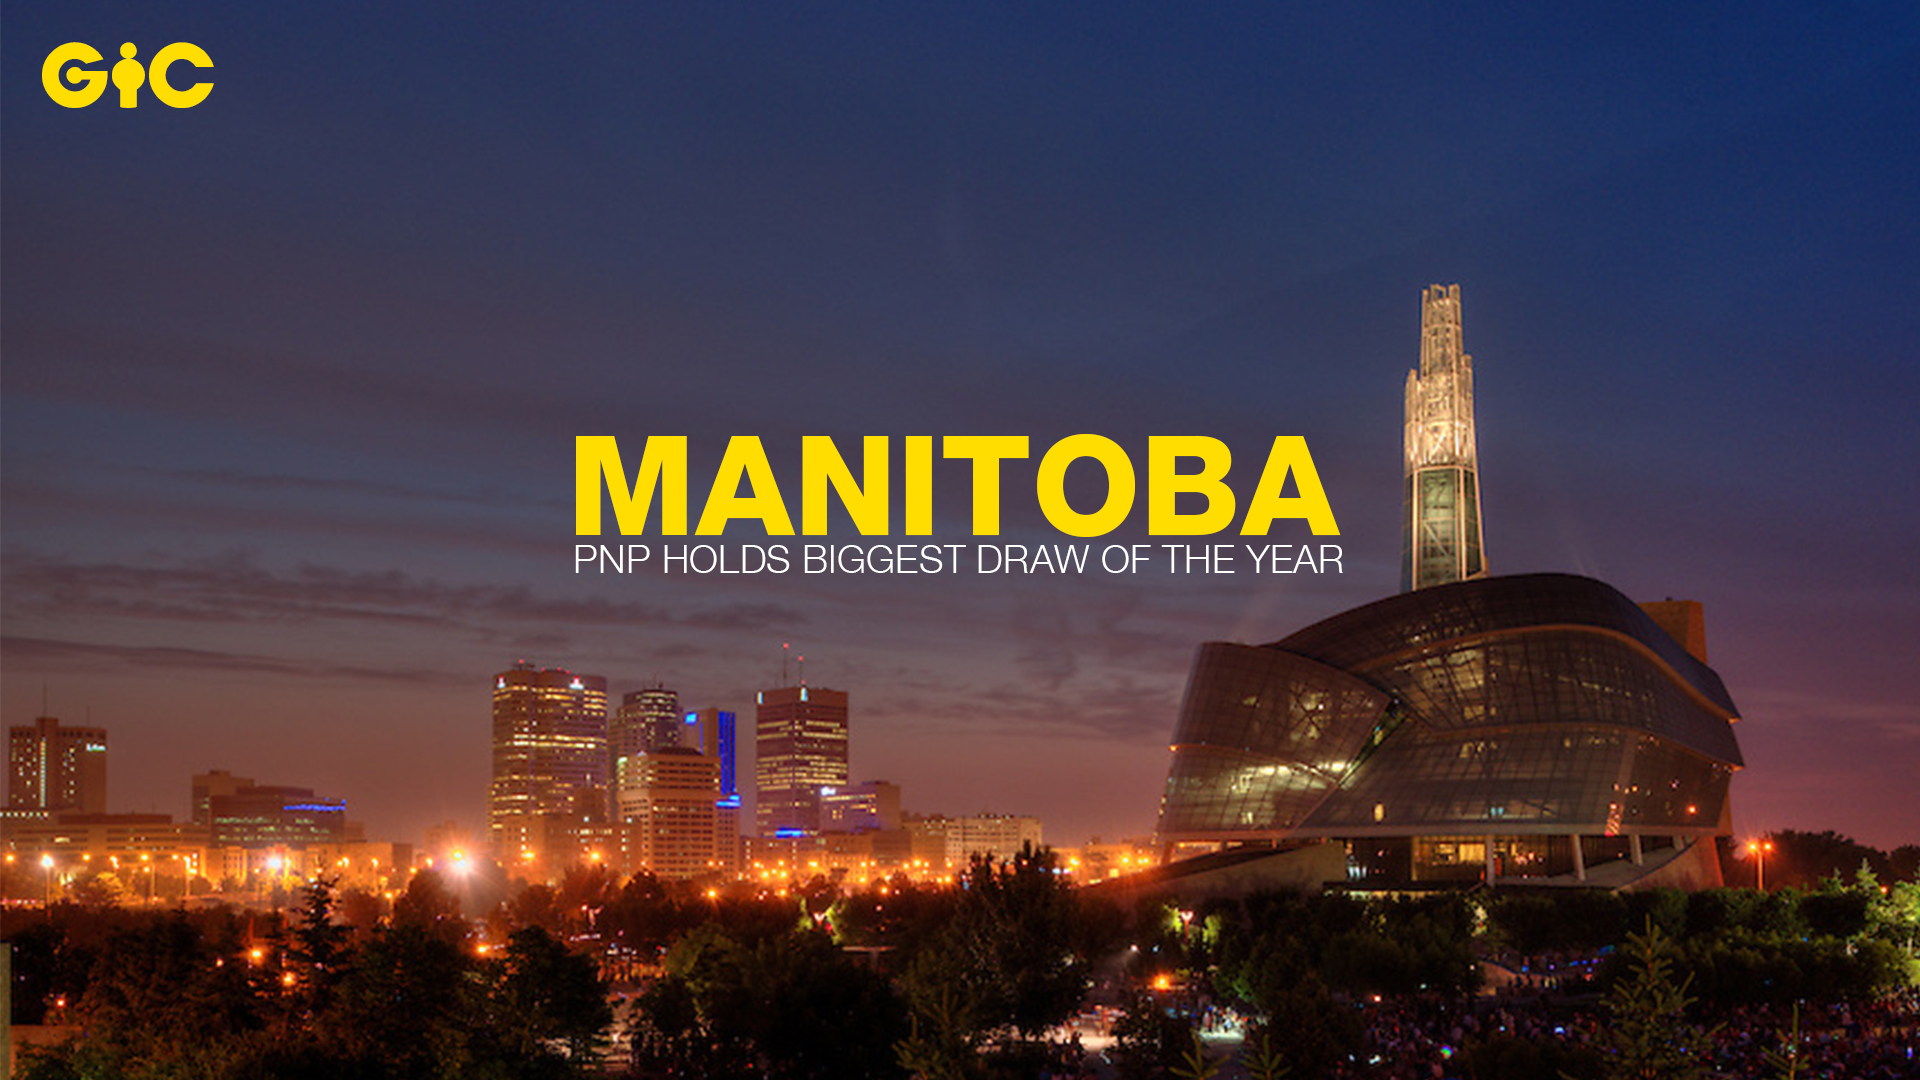 Manitoba PNP holds biggest draw of the year